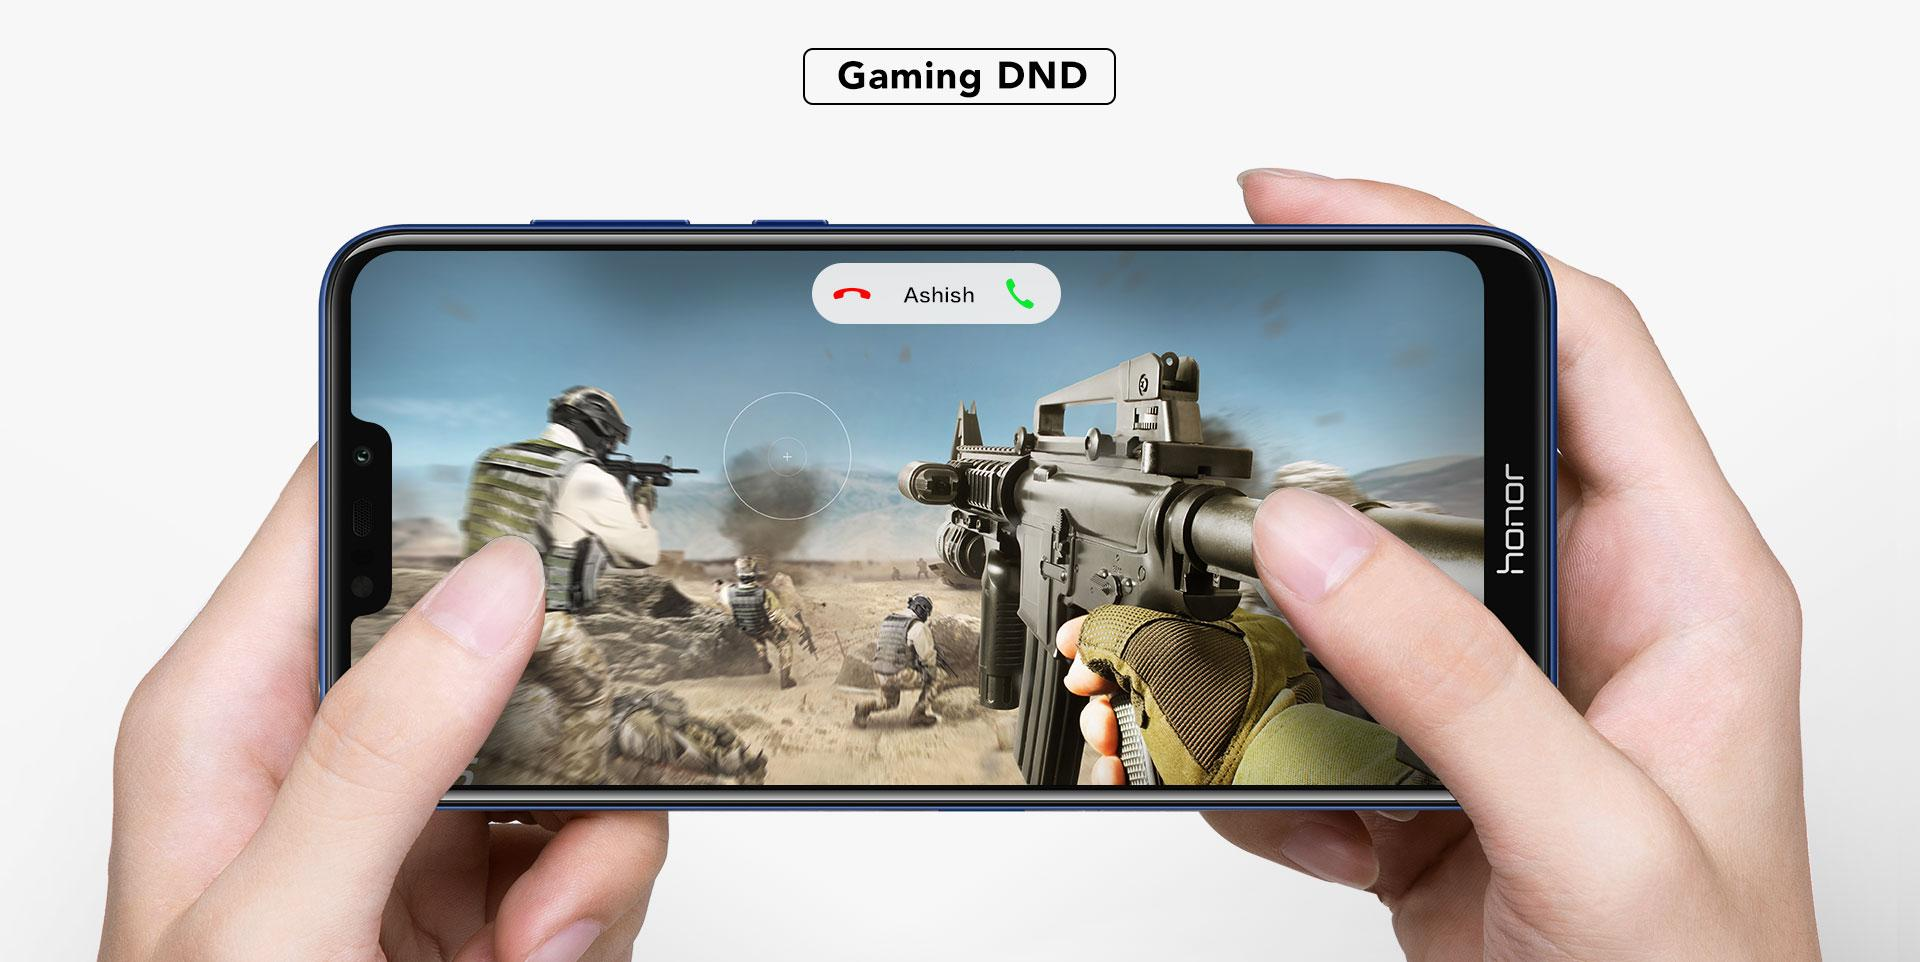 Honor 8C Gaming Suite DND